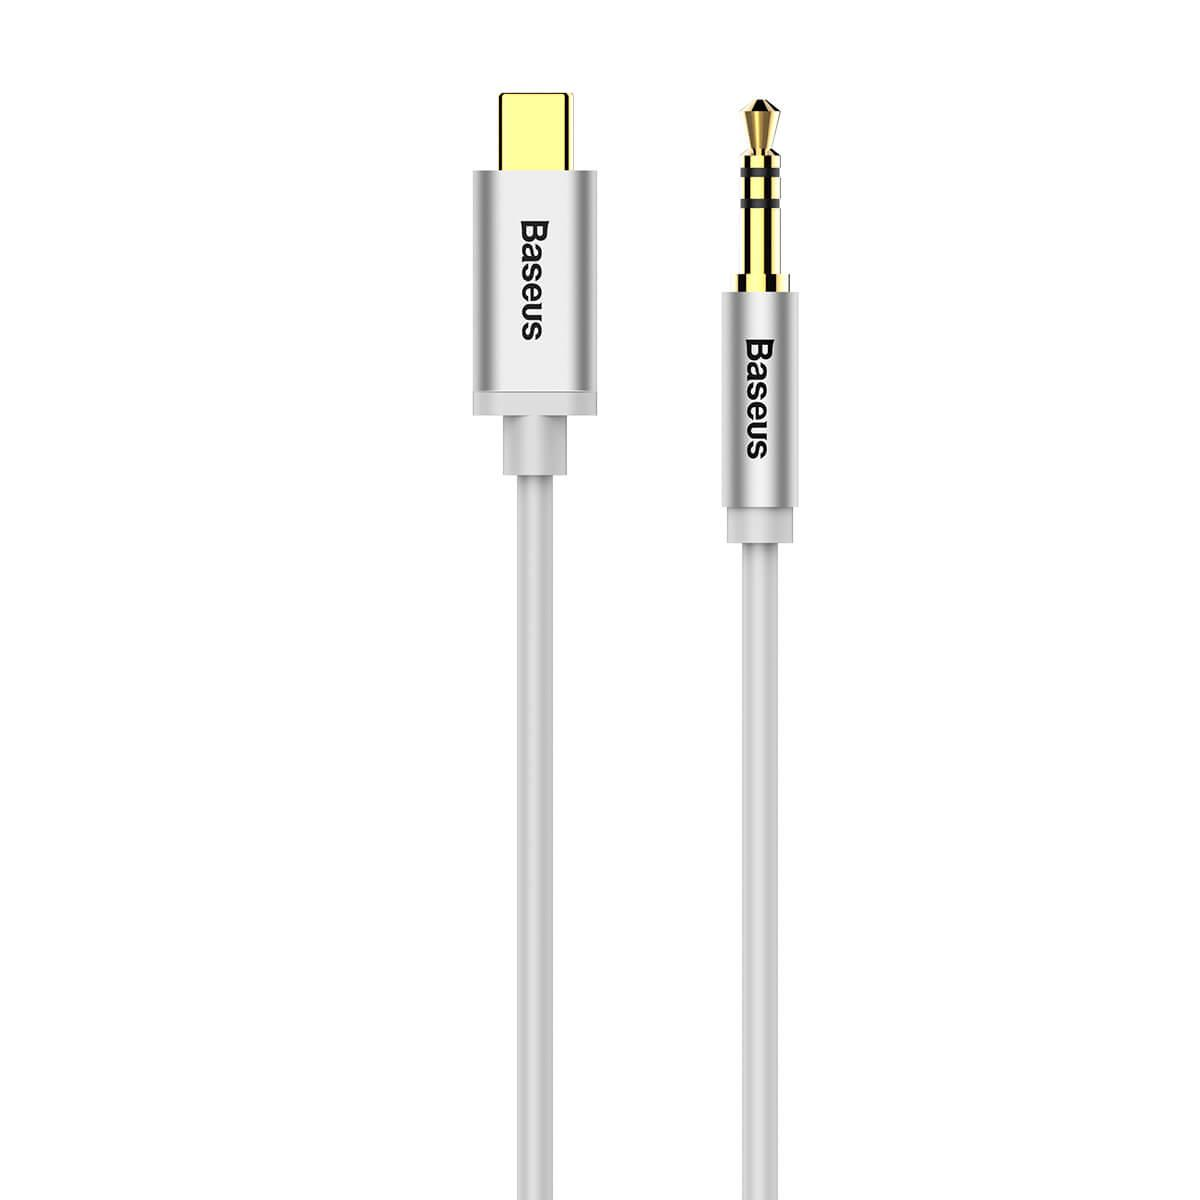 Audio cable Baseus M01 Yiven Type-C to 3.5 miniJack, male to male, 1m white